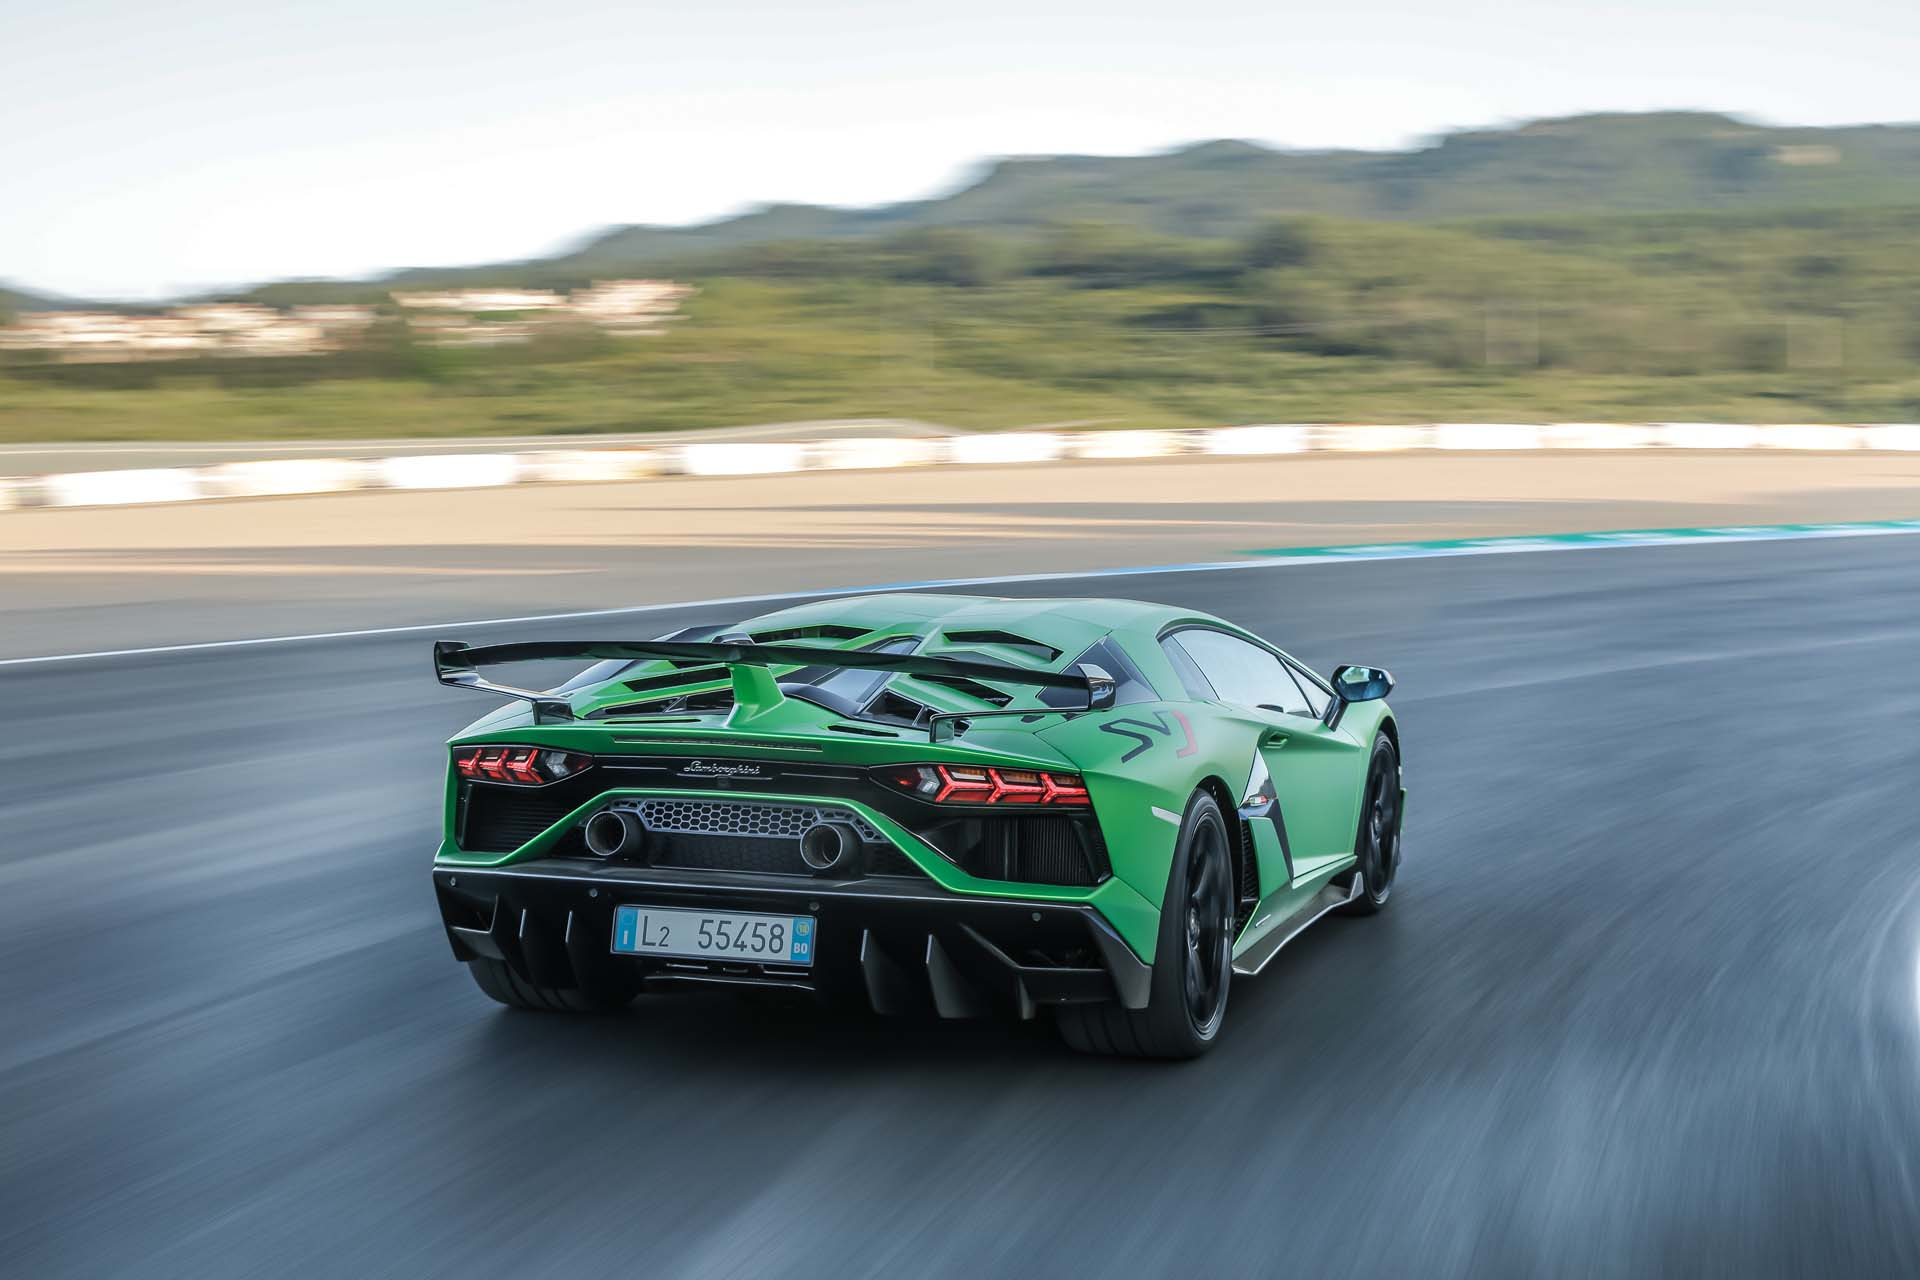 2019 Lamborghini Aventador SVJ Rear Three-Quarter Wallpapers #20 of 241